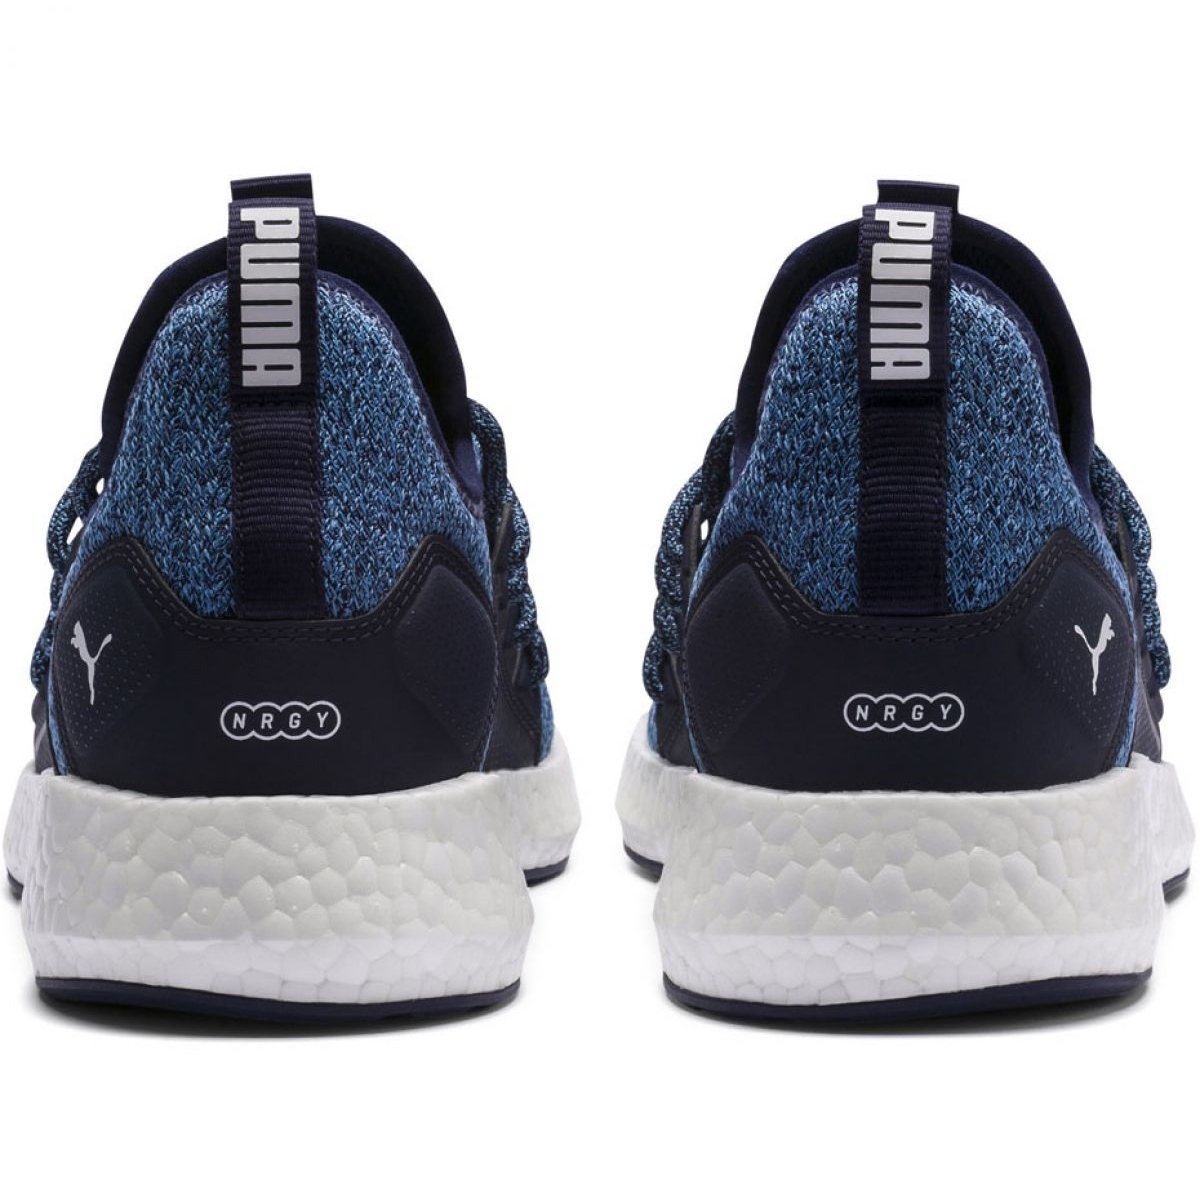 low priced 08edc a0857 Blue Shoes Puma Nrgy Neko Knit M 191093 13